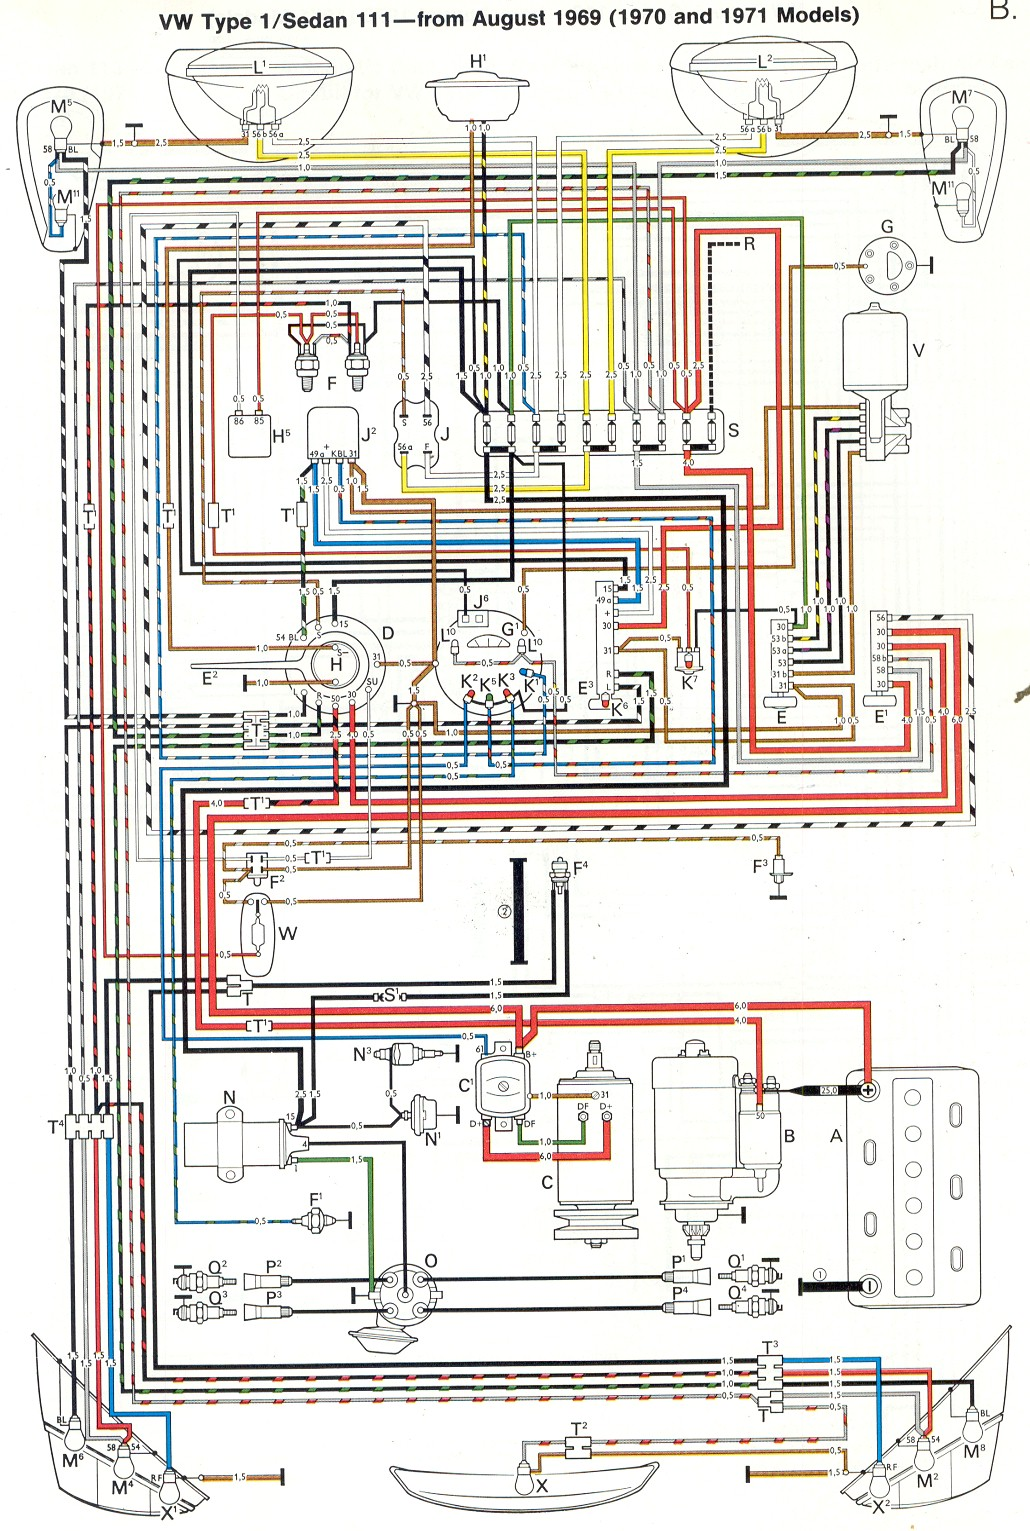 1969 Vw Beetle Wiring Diagram FULL HD Version Wiring Diagram -  RICODIAGRAMBAS.KUTEPORTAL.FRDiagram Database